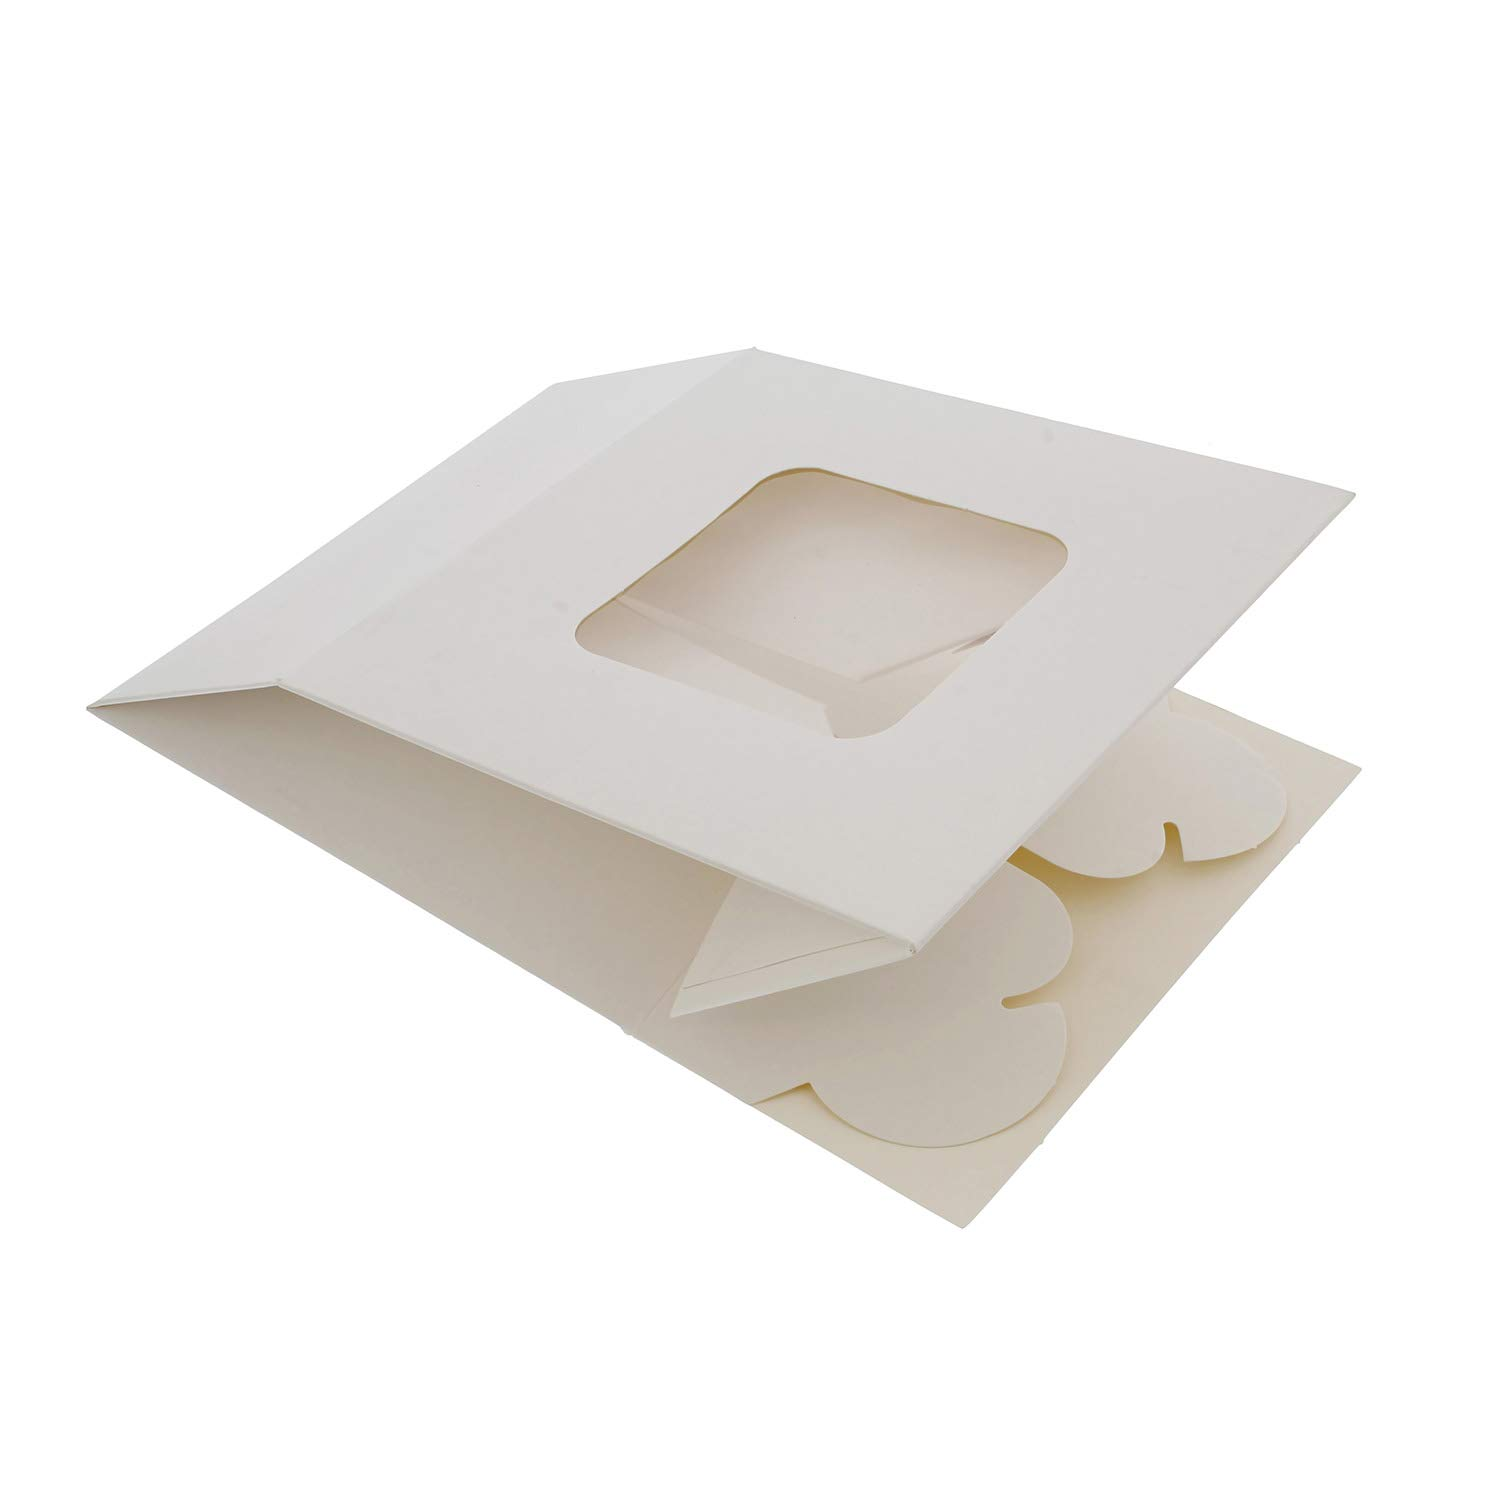 SpecialT White Bakery Boxes with Window, 200pk - 6'' x 6'' Inch Cake Boxes, Party Favor Boxes, Candy Boxes, Dessert Boxes by SpecialT (Image #6)